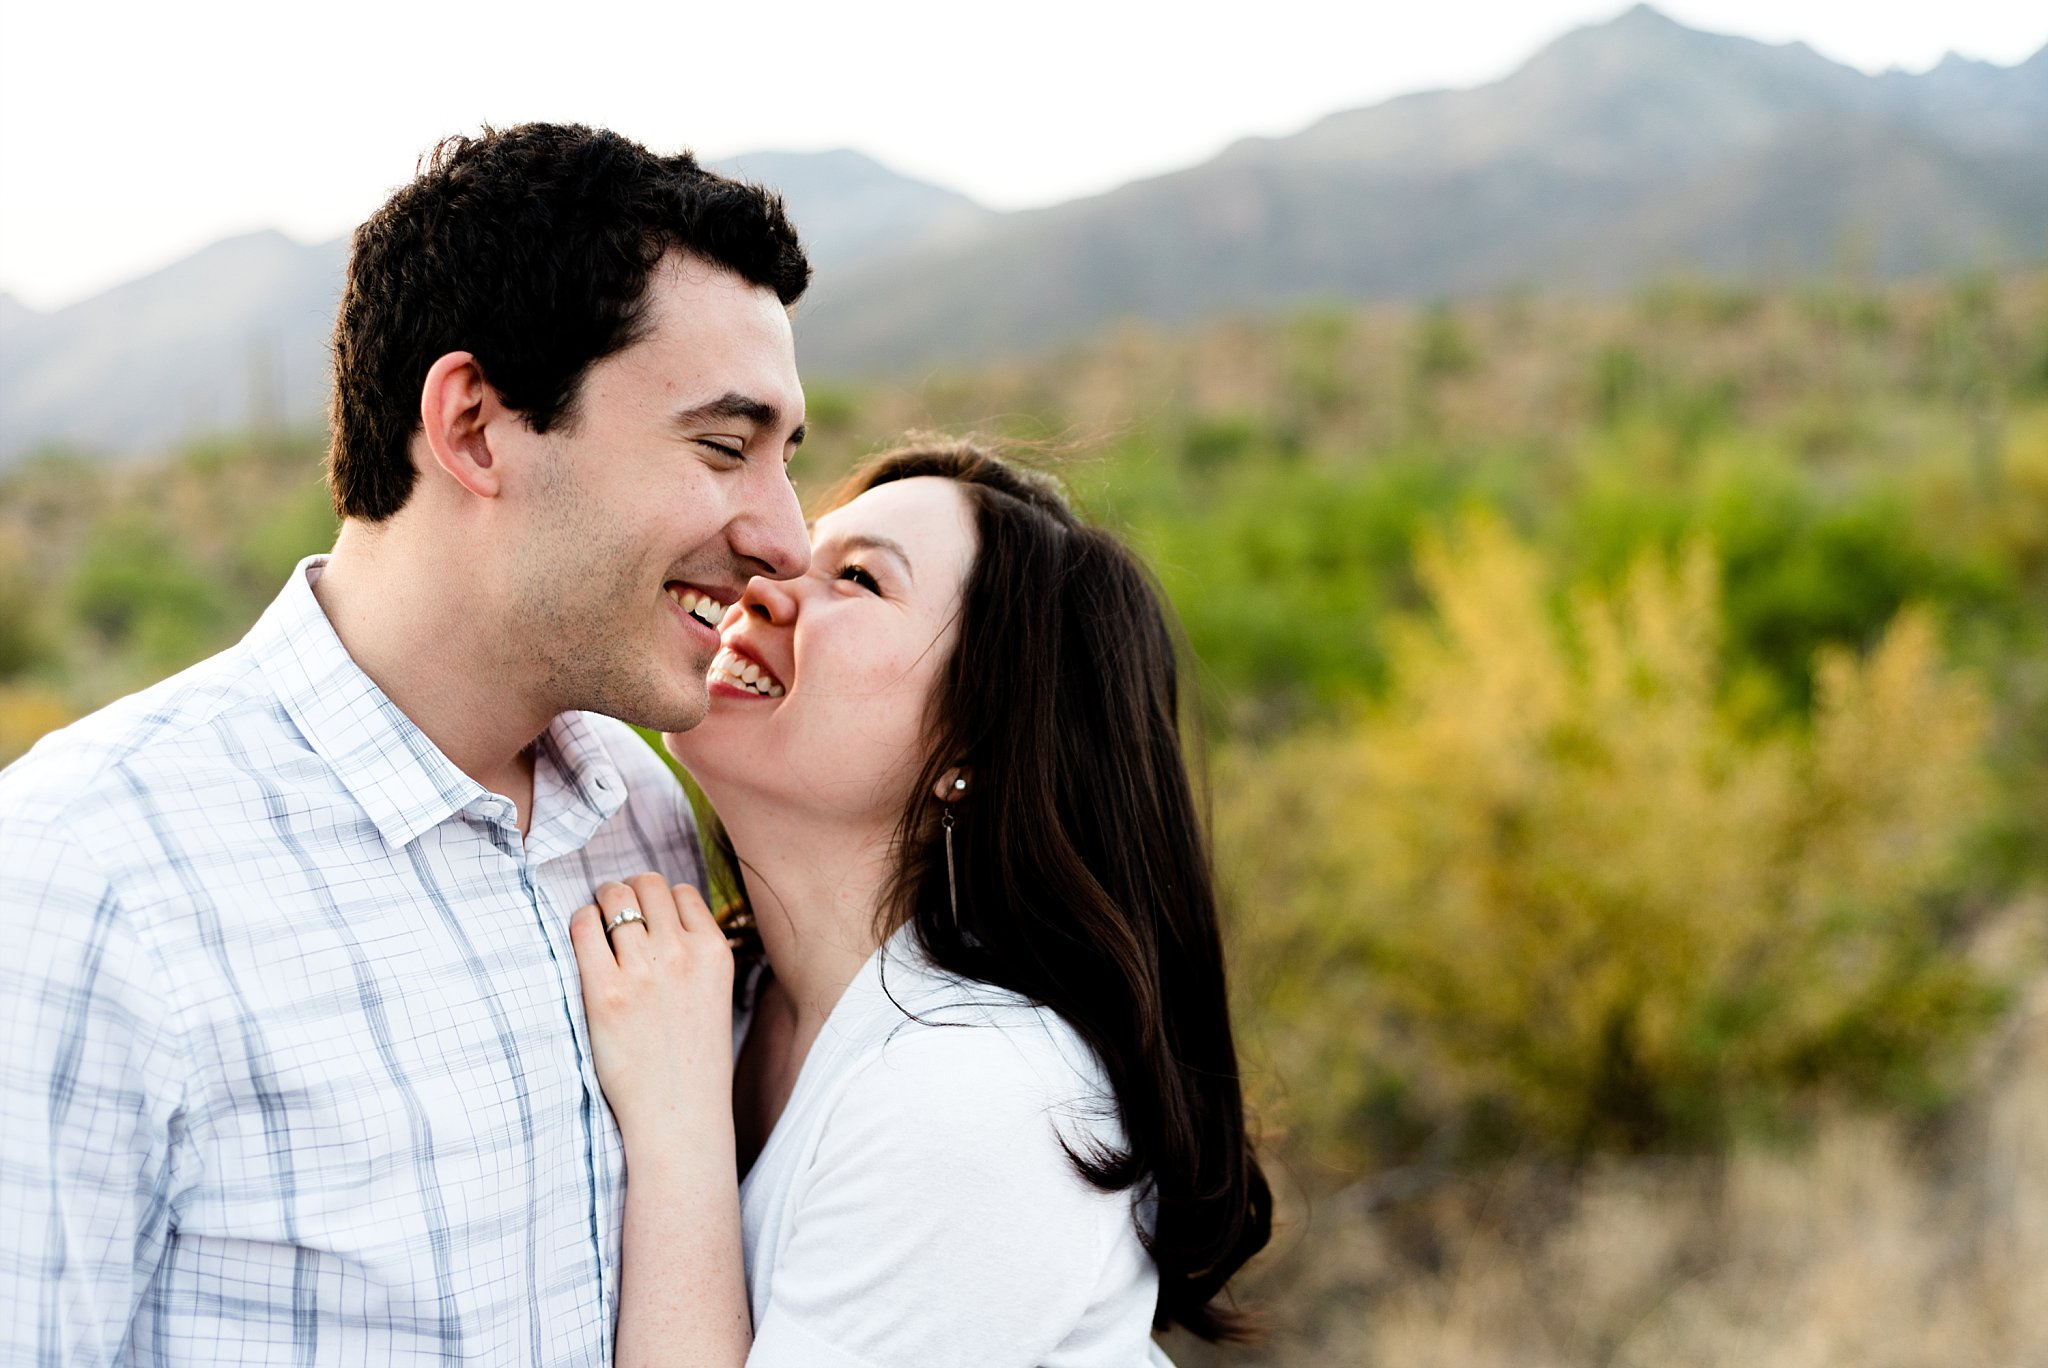 Leslie and Aaron will be tying the knot in March at  Rincon Creek Ranch ! Congrats you two! I can't wait to capture your big day.